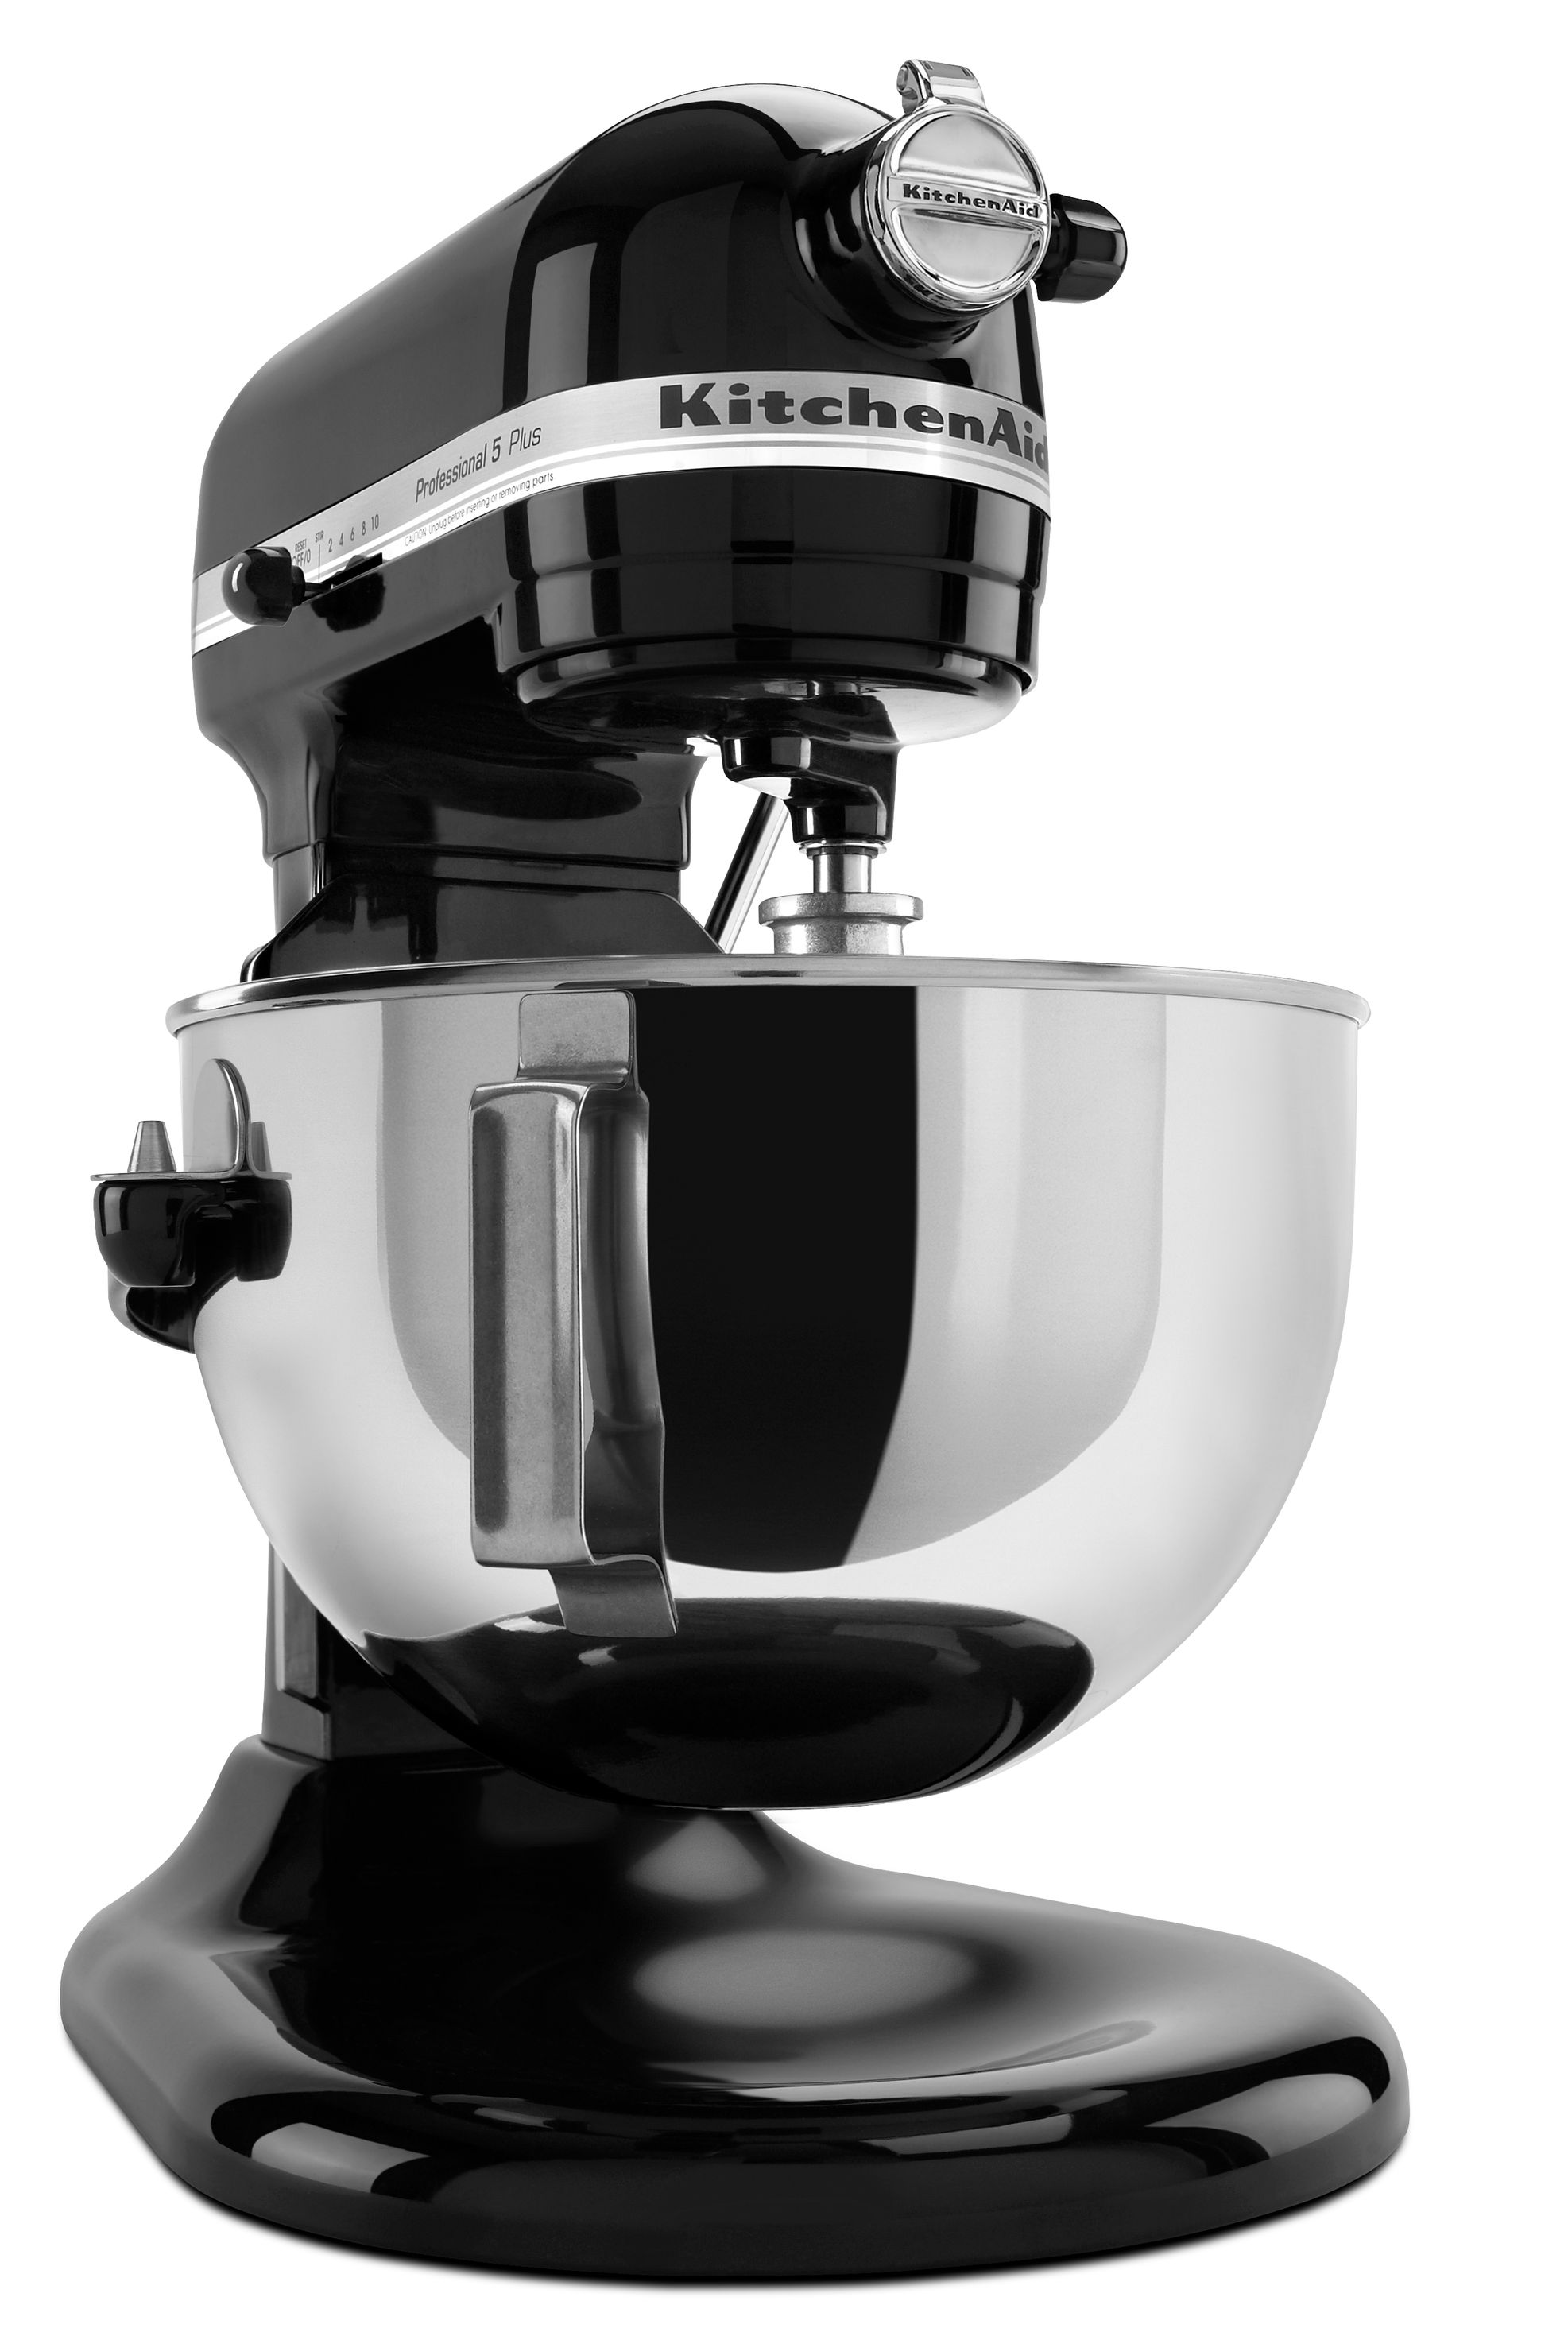 KitchenAid-Refurbished-Professional-5-Plus-Series-Bowl-Lift-Stand-Mixer thumbnail 13